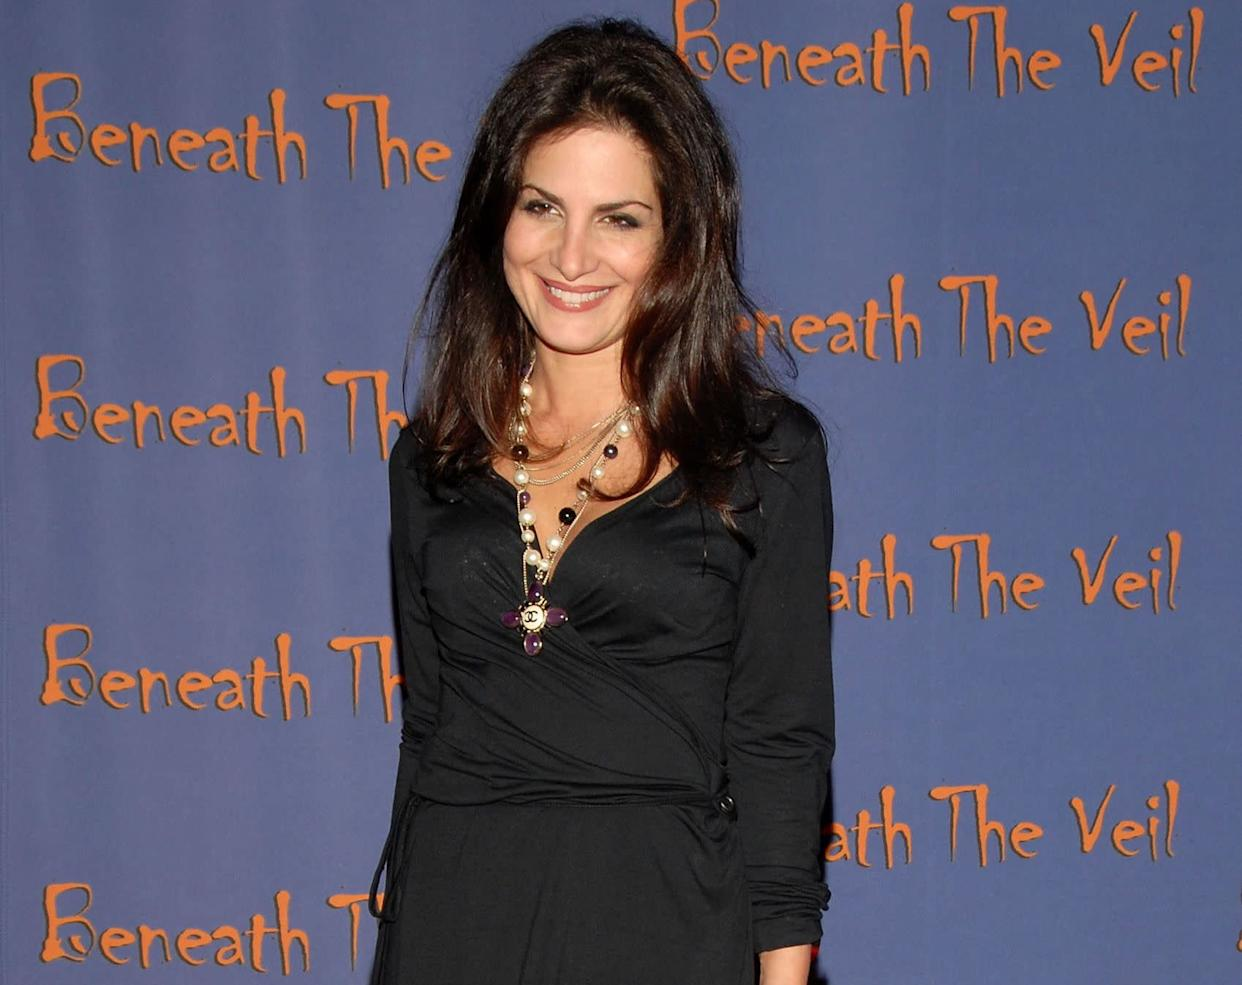 <strong>Her account</strong>: The former Fox News correspondent <span>told The New York Times</span> she was fired for complaining about sexual harassment from then-Fox News Washington bureau chief Brian Wilson. Similar to other accusations, Bakhtiar said Ailes also behaved inappropriately, asking her to stand during a job interview so he could see her legs and sending her miniskirts to wear at work. <br><br><strong>Ailes&amp;rsquo; response</strong>: None from Ailes, Fox News or parent company 21st Century Fox. <br><br><strong>When we found out: </strong>July 23, 2016<br><br><strong>When she says it happened: </strong>2007